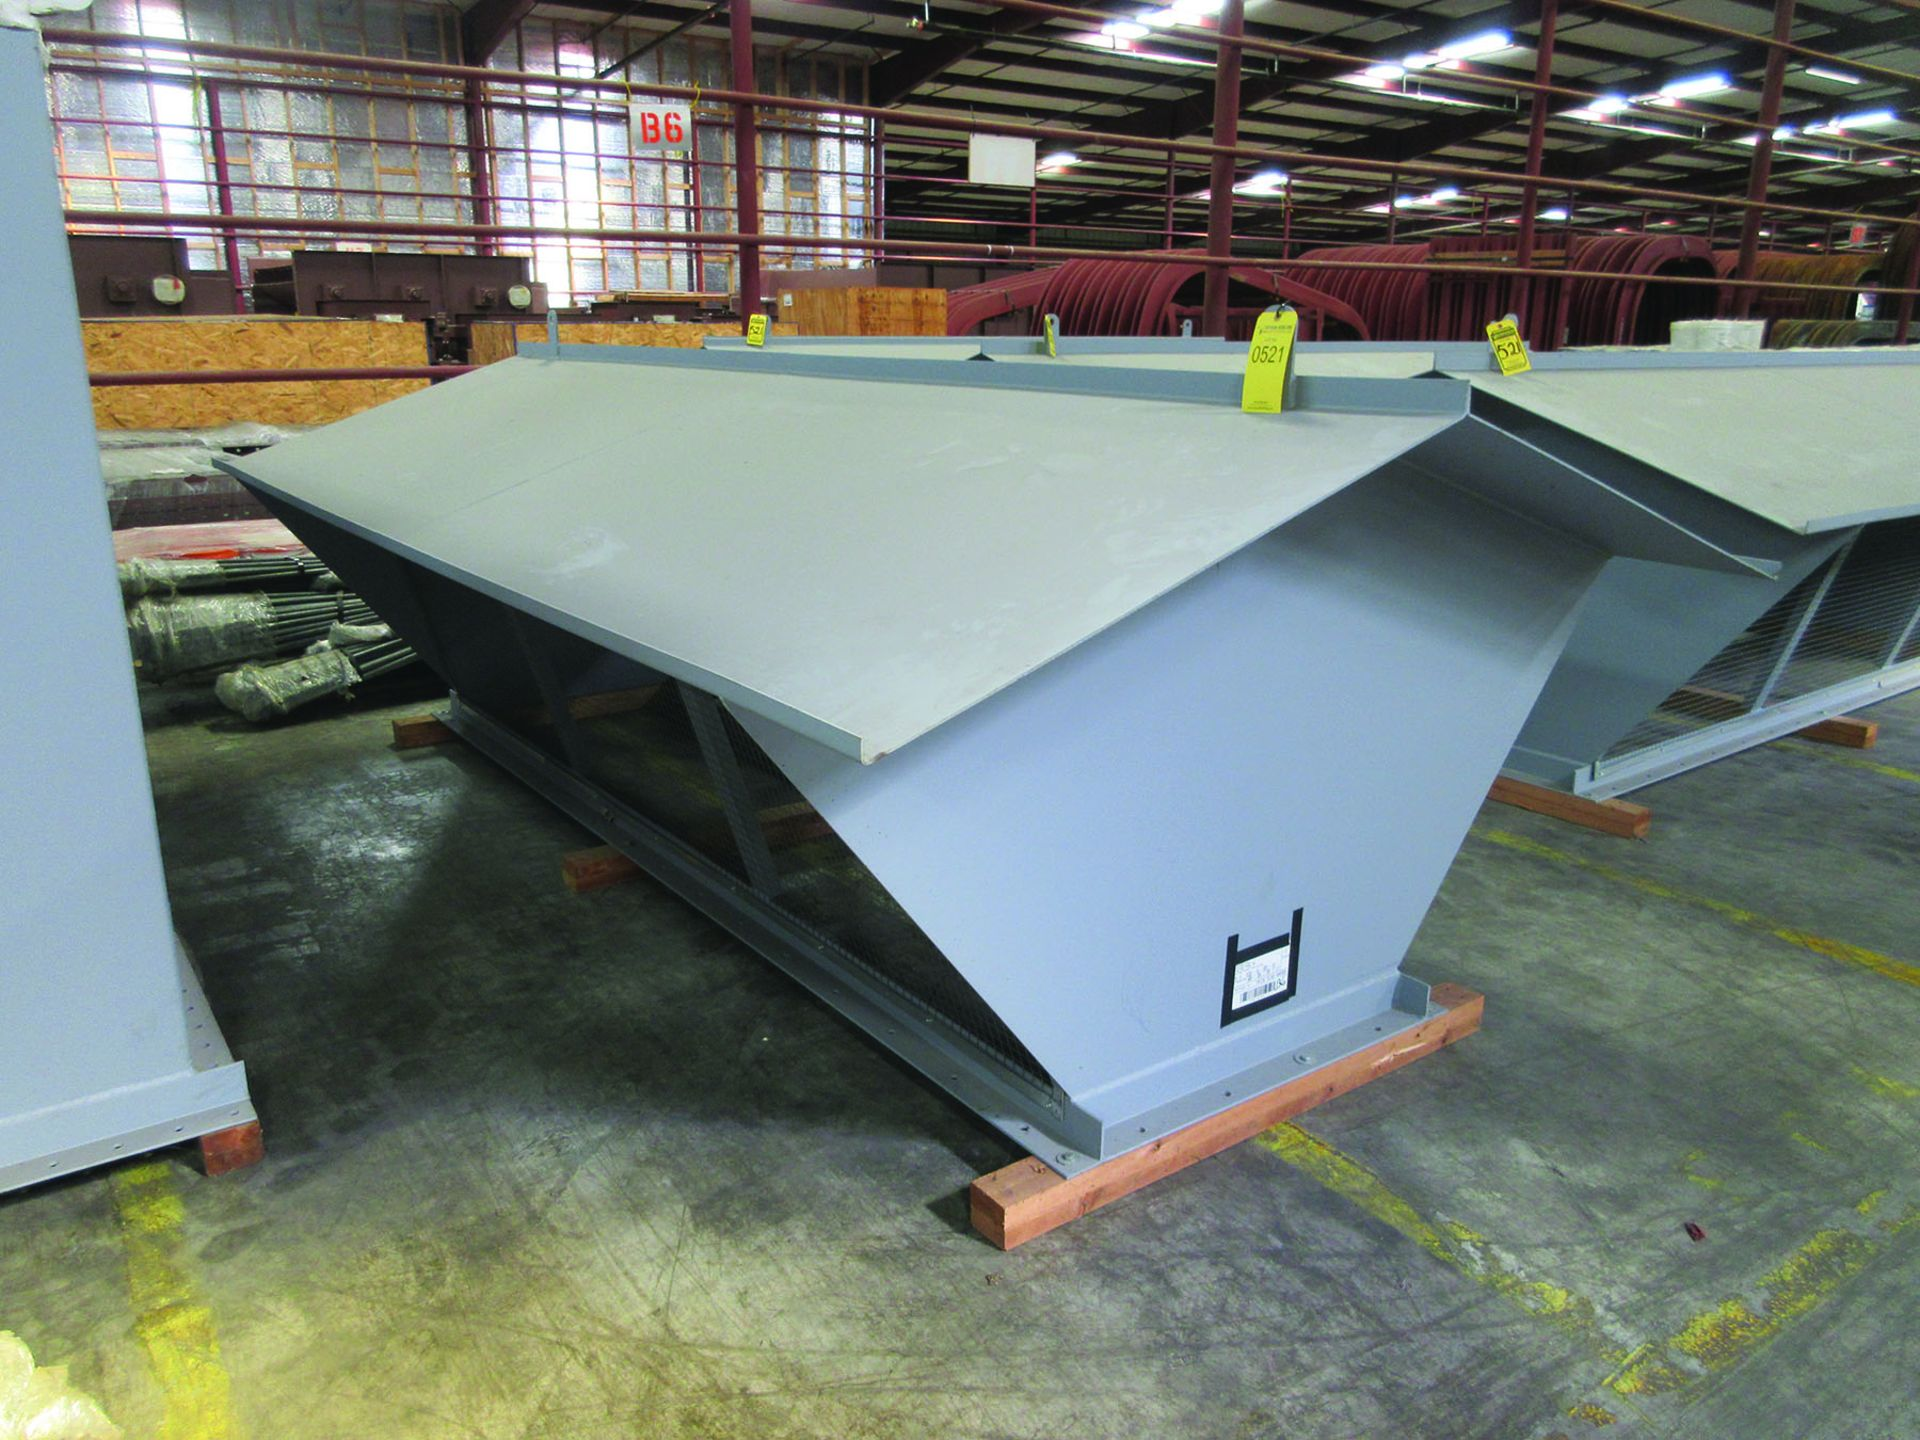 (4) FANS, MODEL 33VR1B-54, WEIGHTS: 4,122 LB. EACH, DIMENSIONS: 132'' X 45'' X 79'', ALSO RODS, - Image 2 of 10